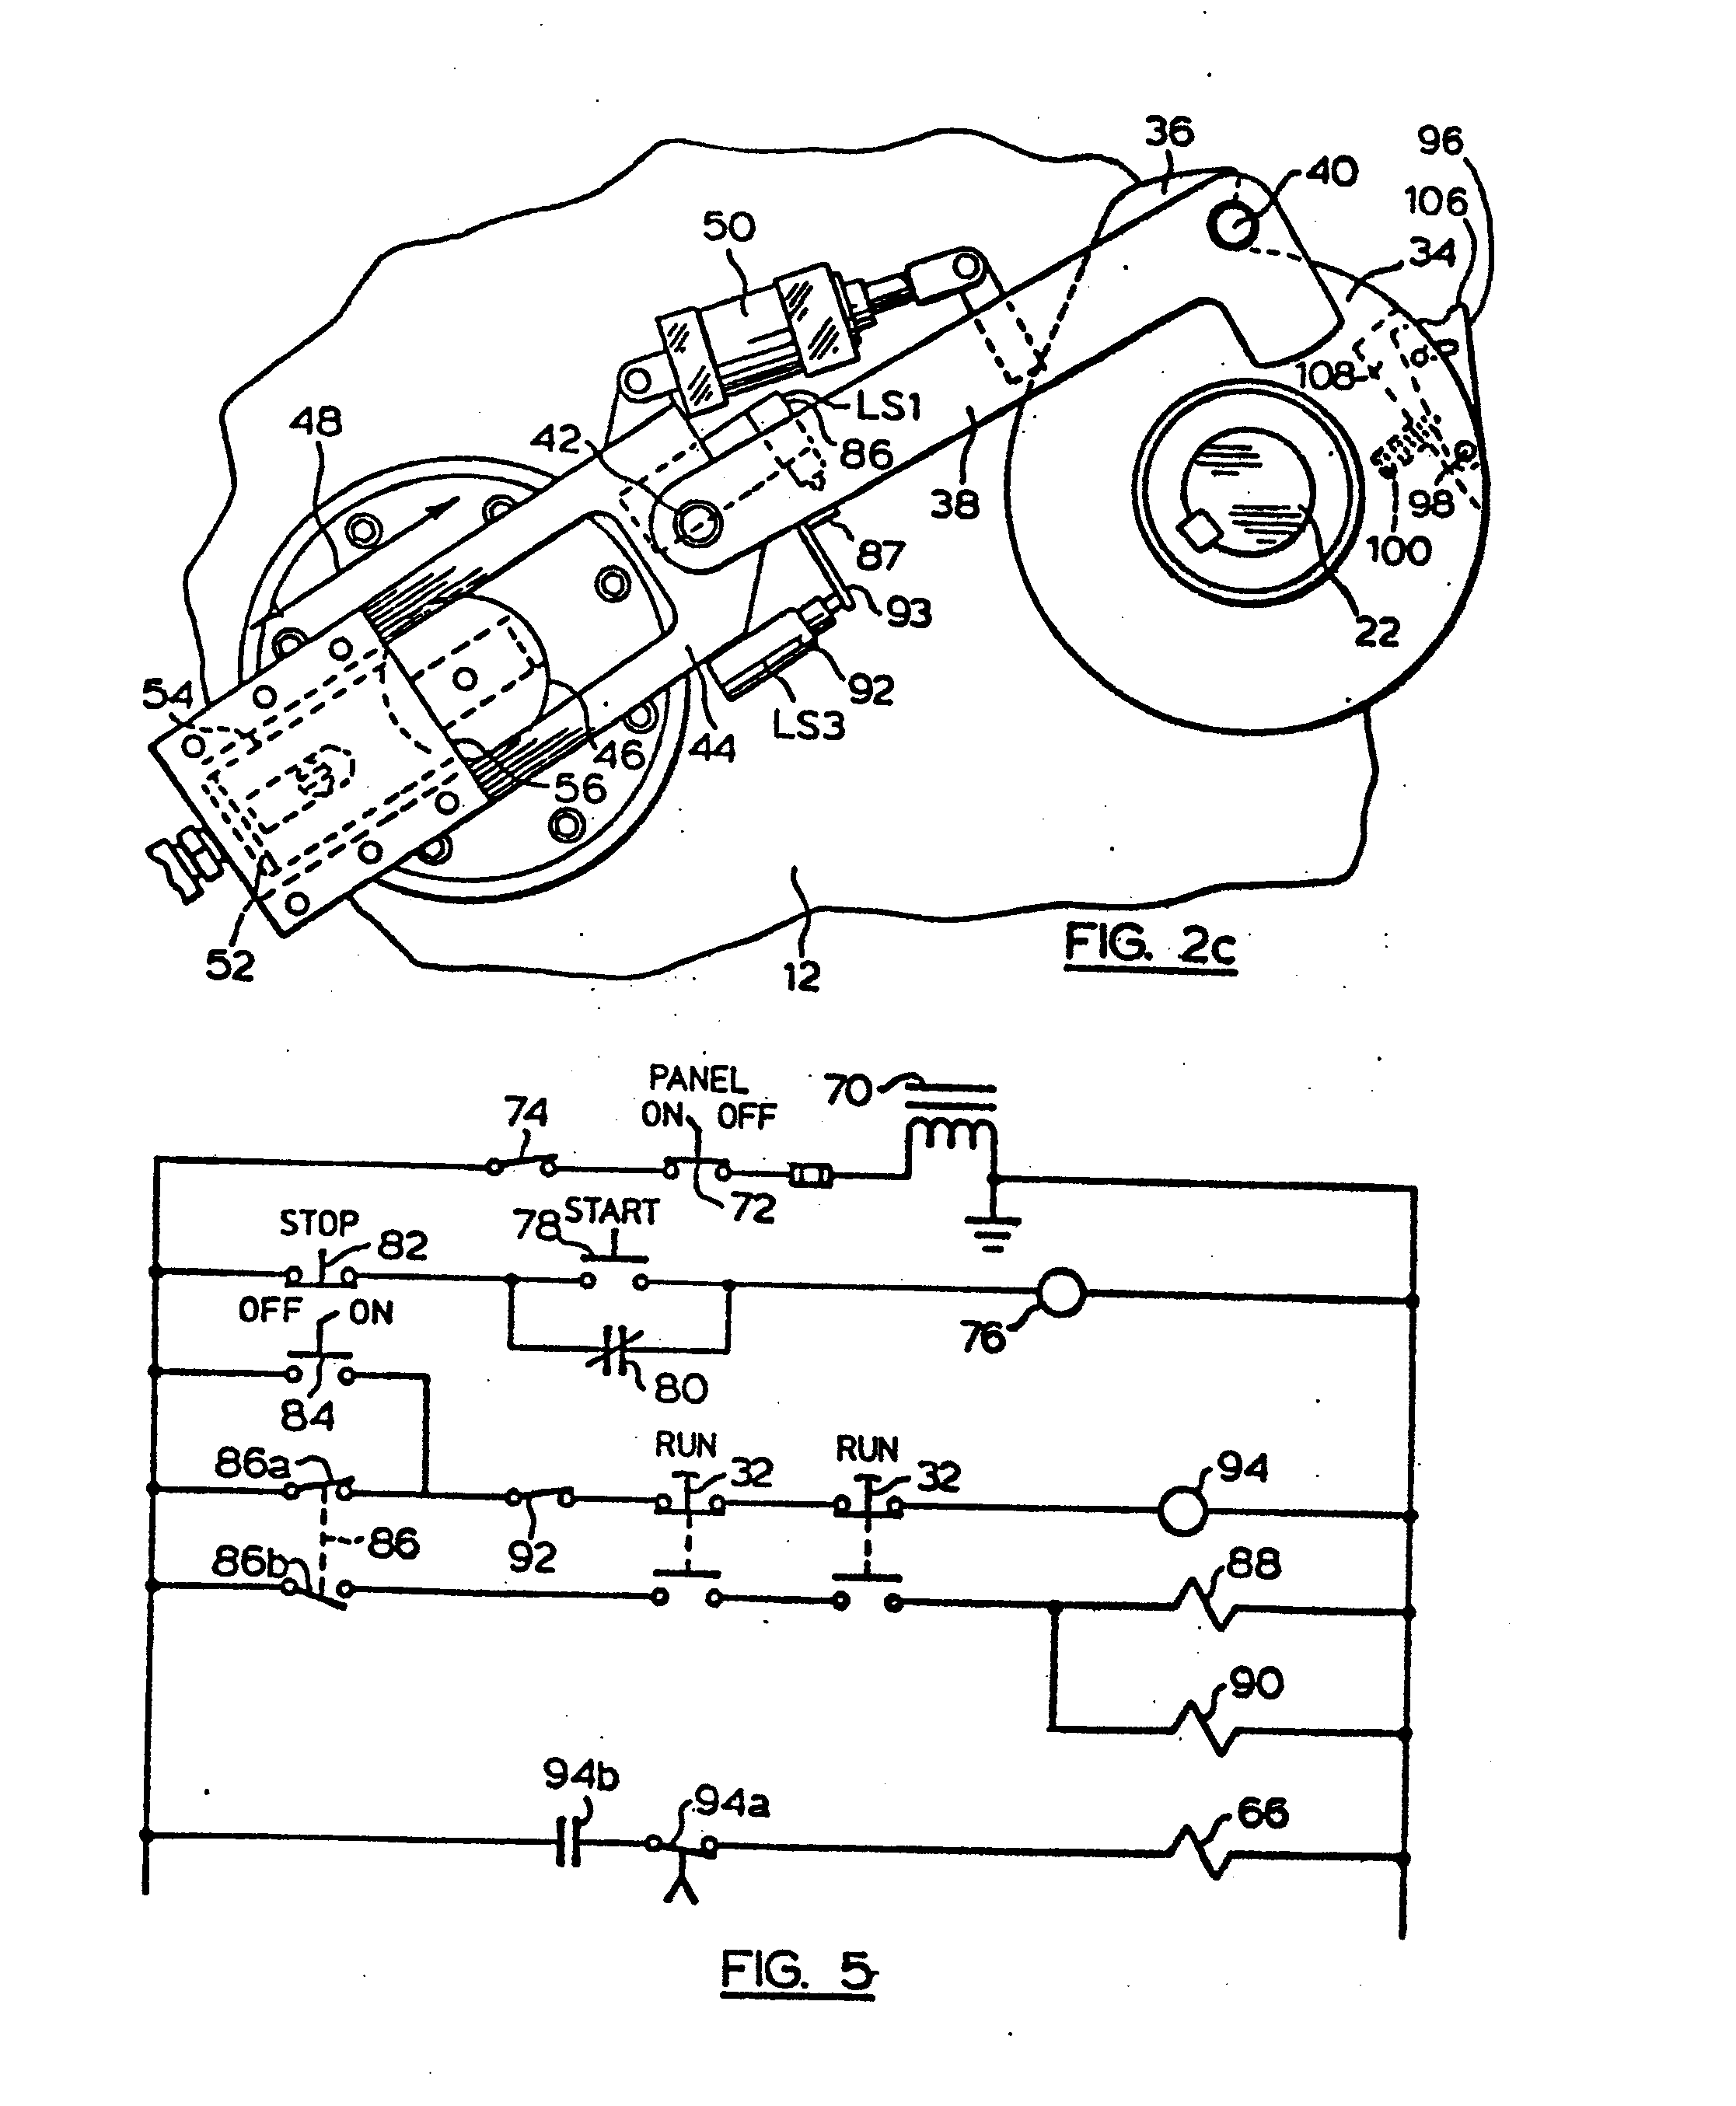 roto phase wiring diagram with 1952 John Deere G Wiring Diagram on 1952 John Deere G Wiring Diagram furthermore Starting Methods Of Induction Motor Methods Of Starting Motor Motor Starting Induction Motor Principle Star Delta Starter Rotor Resistance Starting Capacitance Capacitive Starting moreover Sony Cdx Gt640ui Wiring Diagram together with Scooter Ignition Wiring Diagram likewise Lathe Wiring Diagrams.